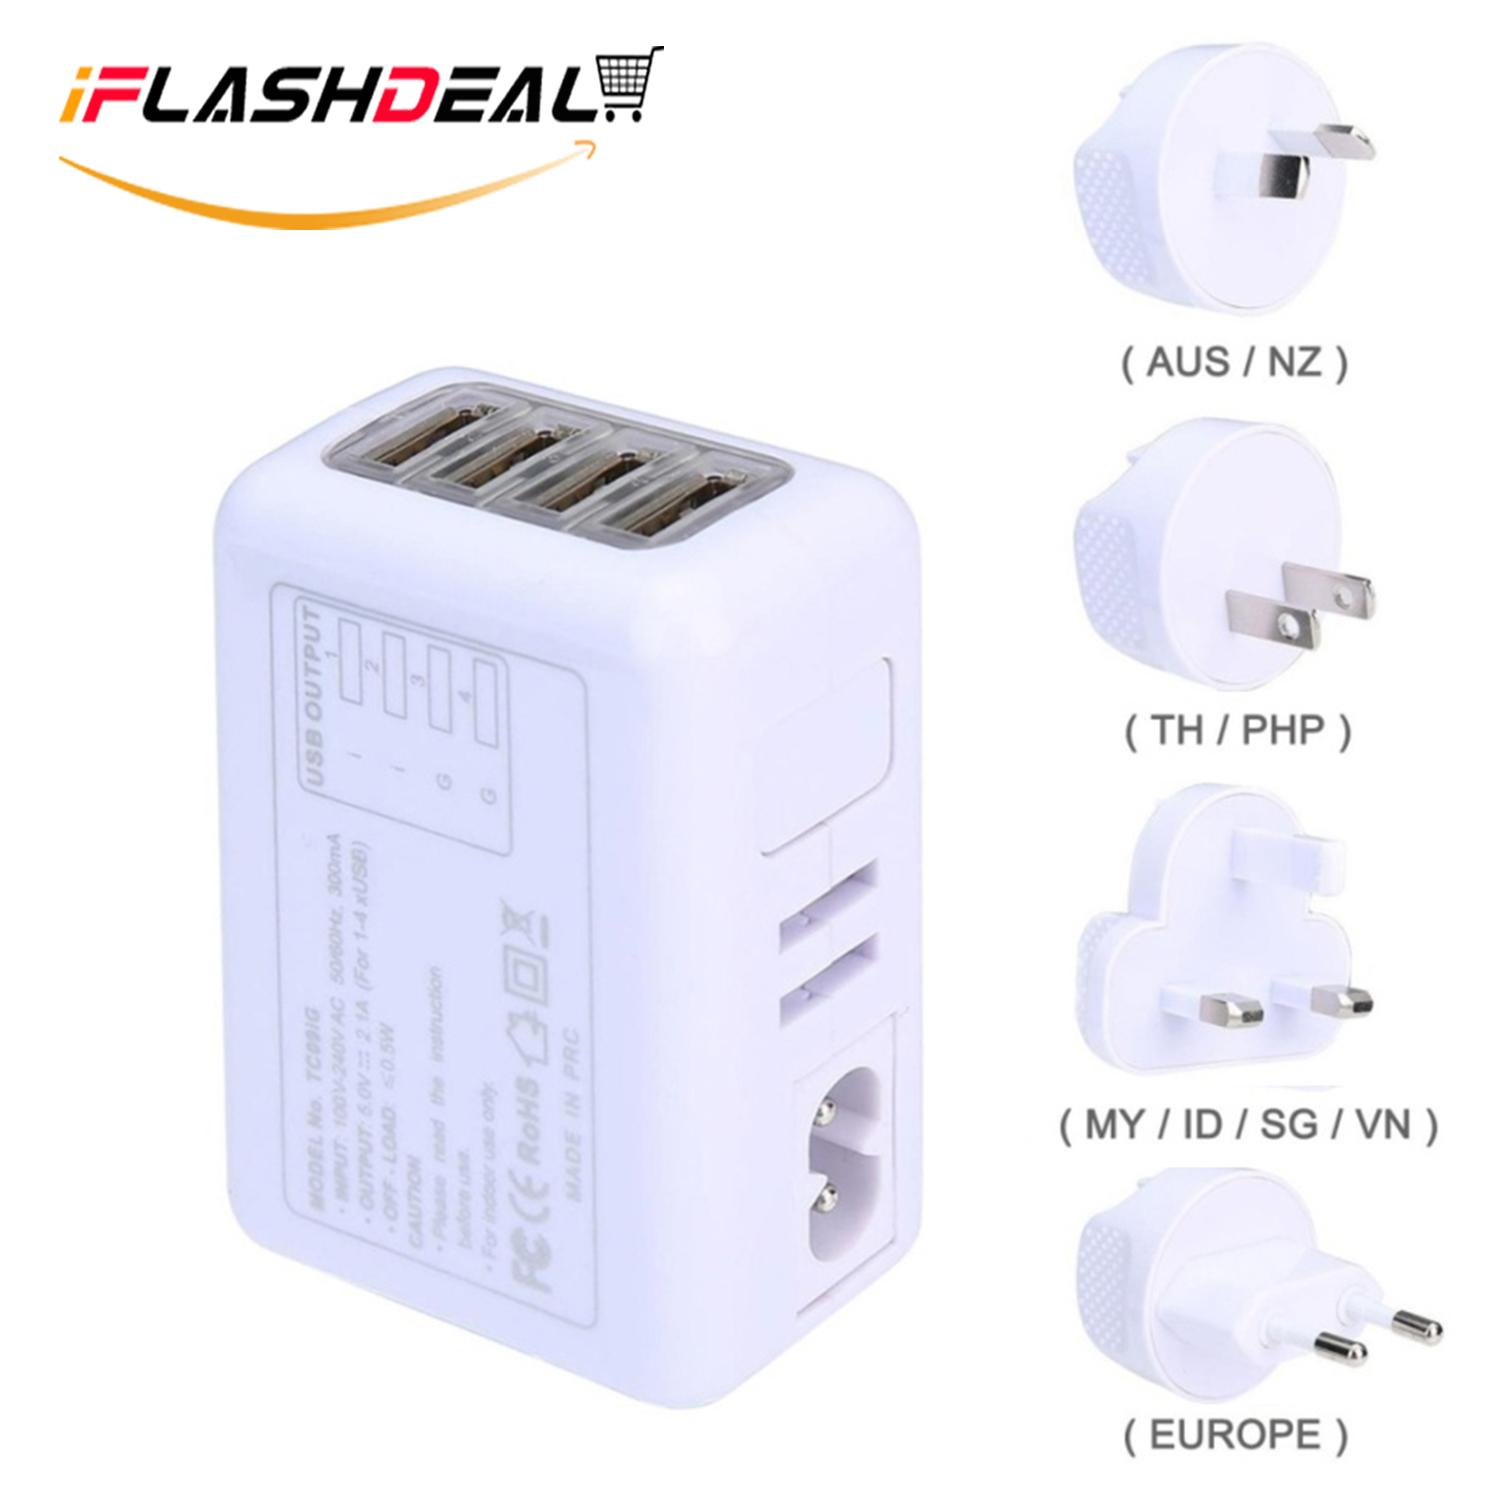 Travel Adapter For Sale Sockets Online Brands Prices Wall Outlet Ports Plugged Wiring Devices Home Office Ac Usb Device Iflashdeal Universal Adaptor Internasional 4 Port Plug Power Charger